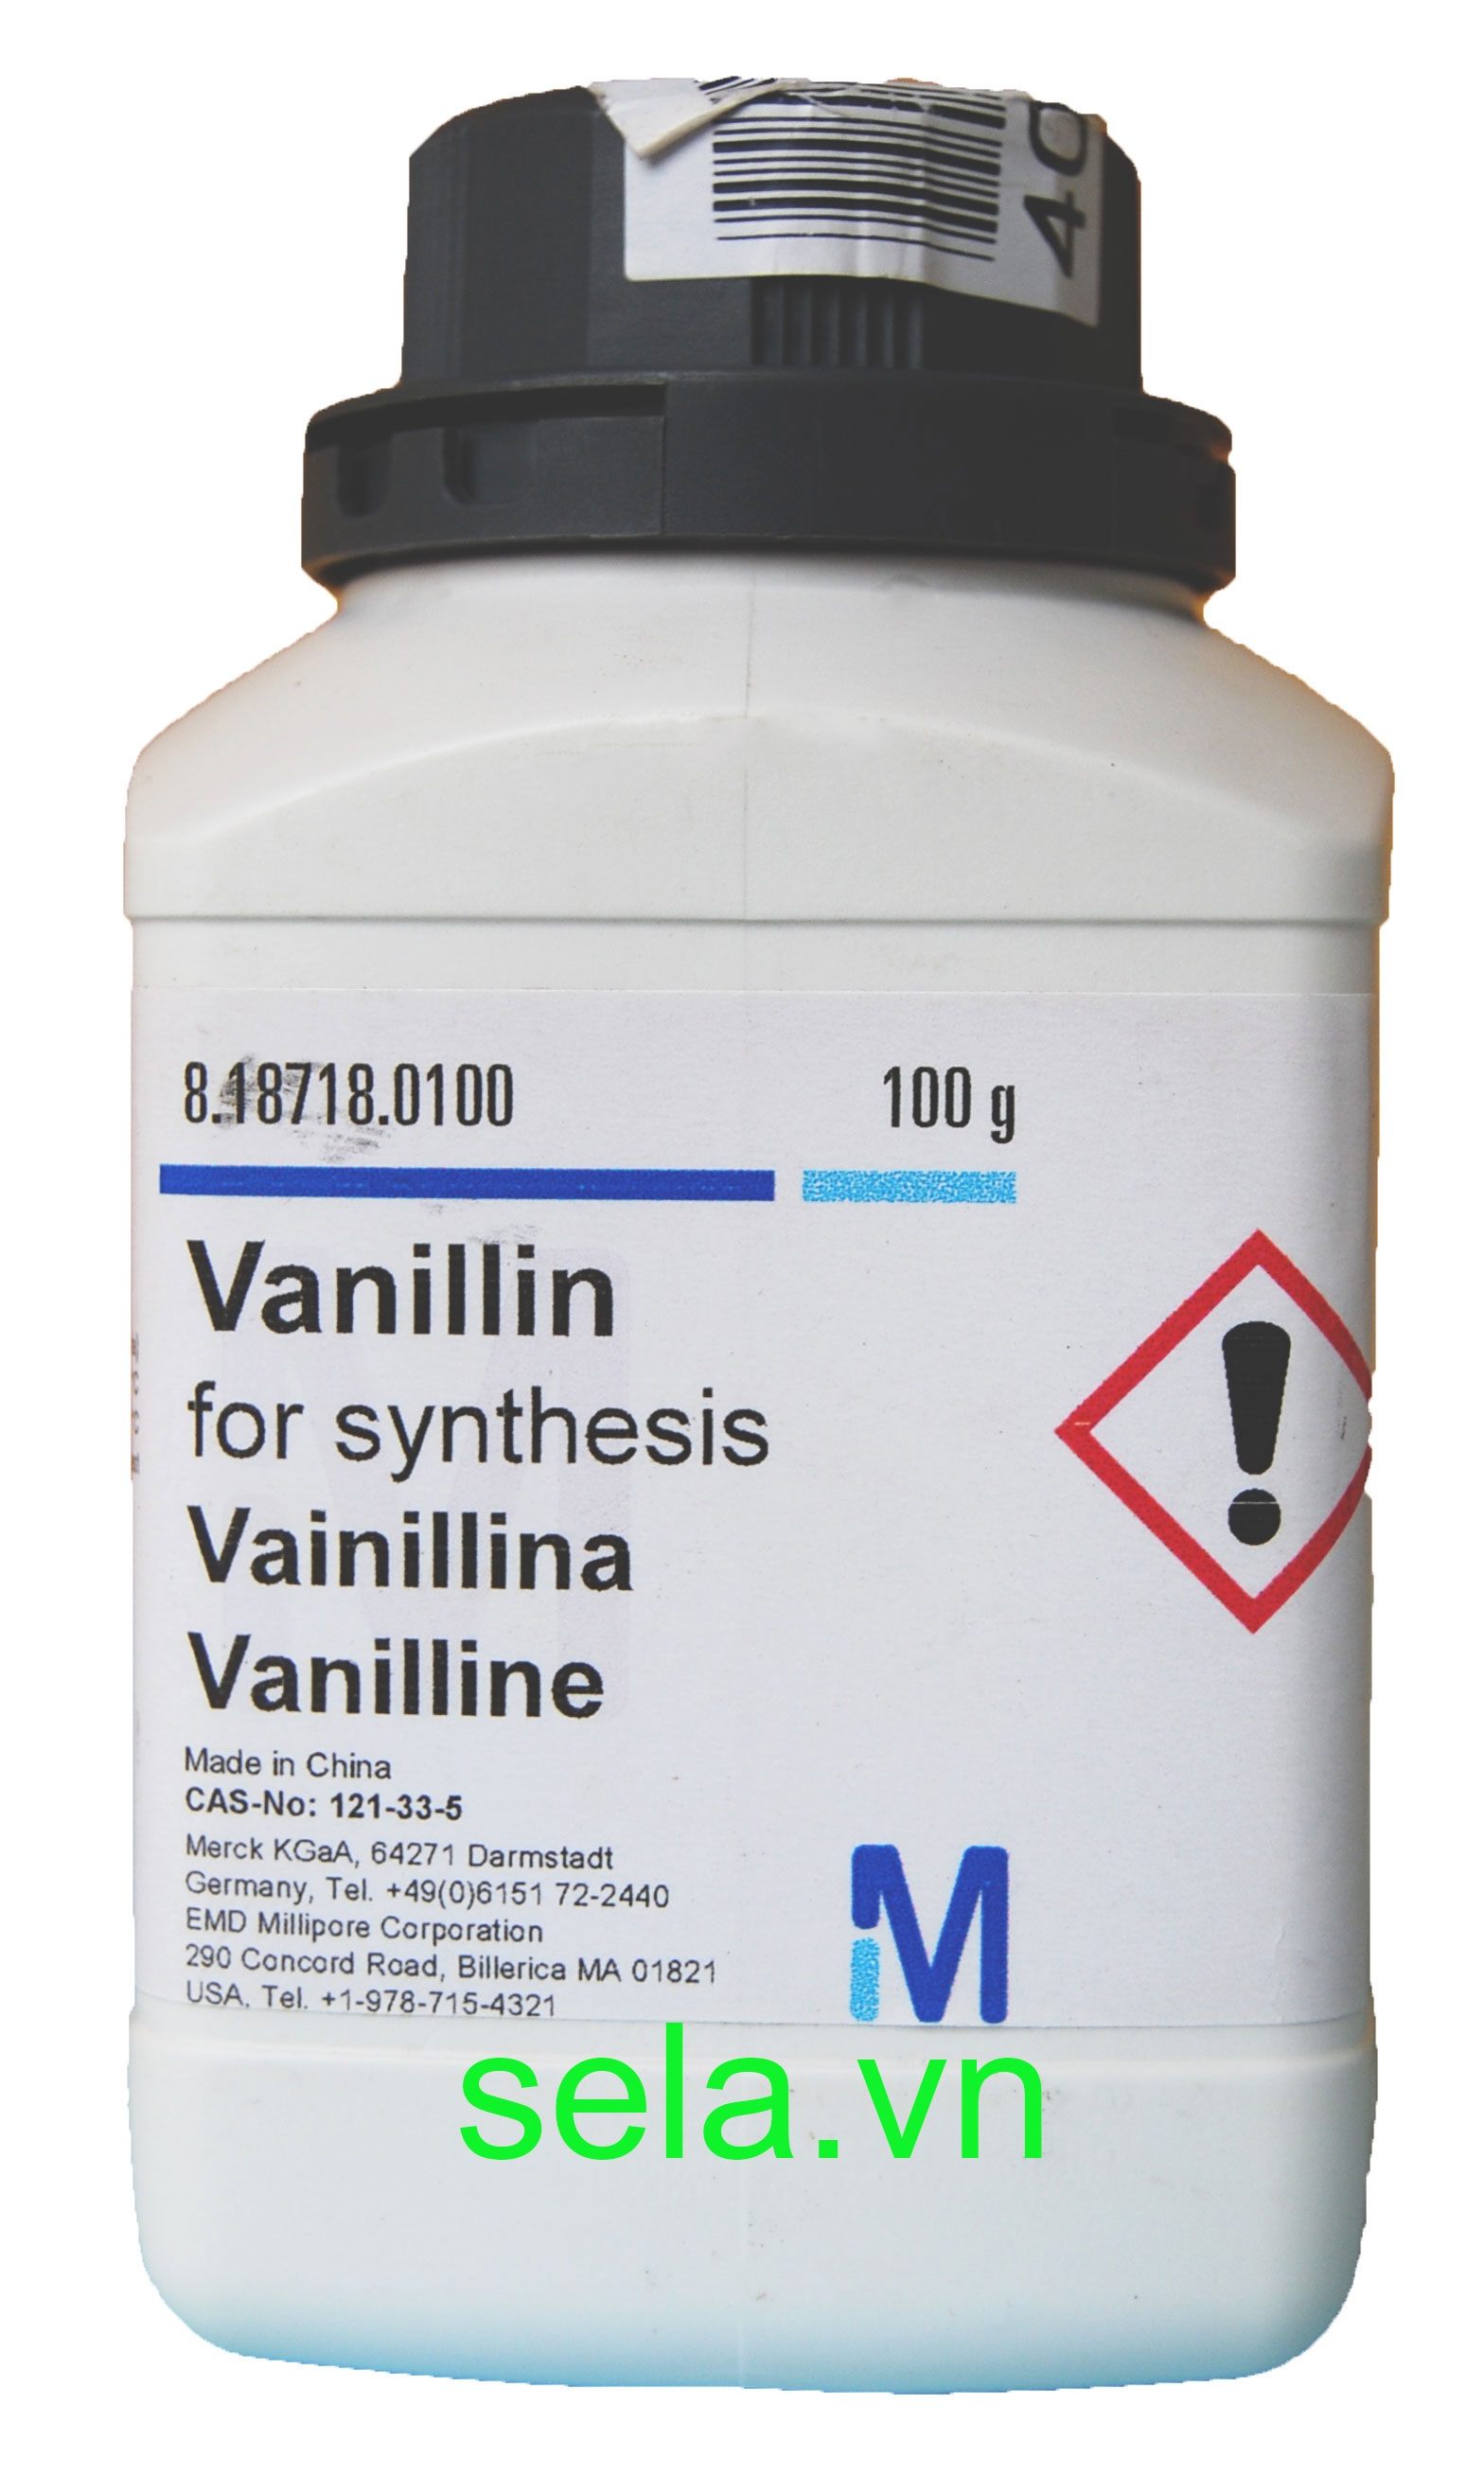 Vanillin for synthesis